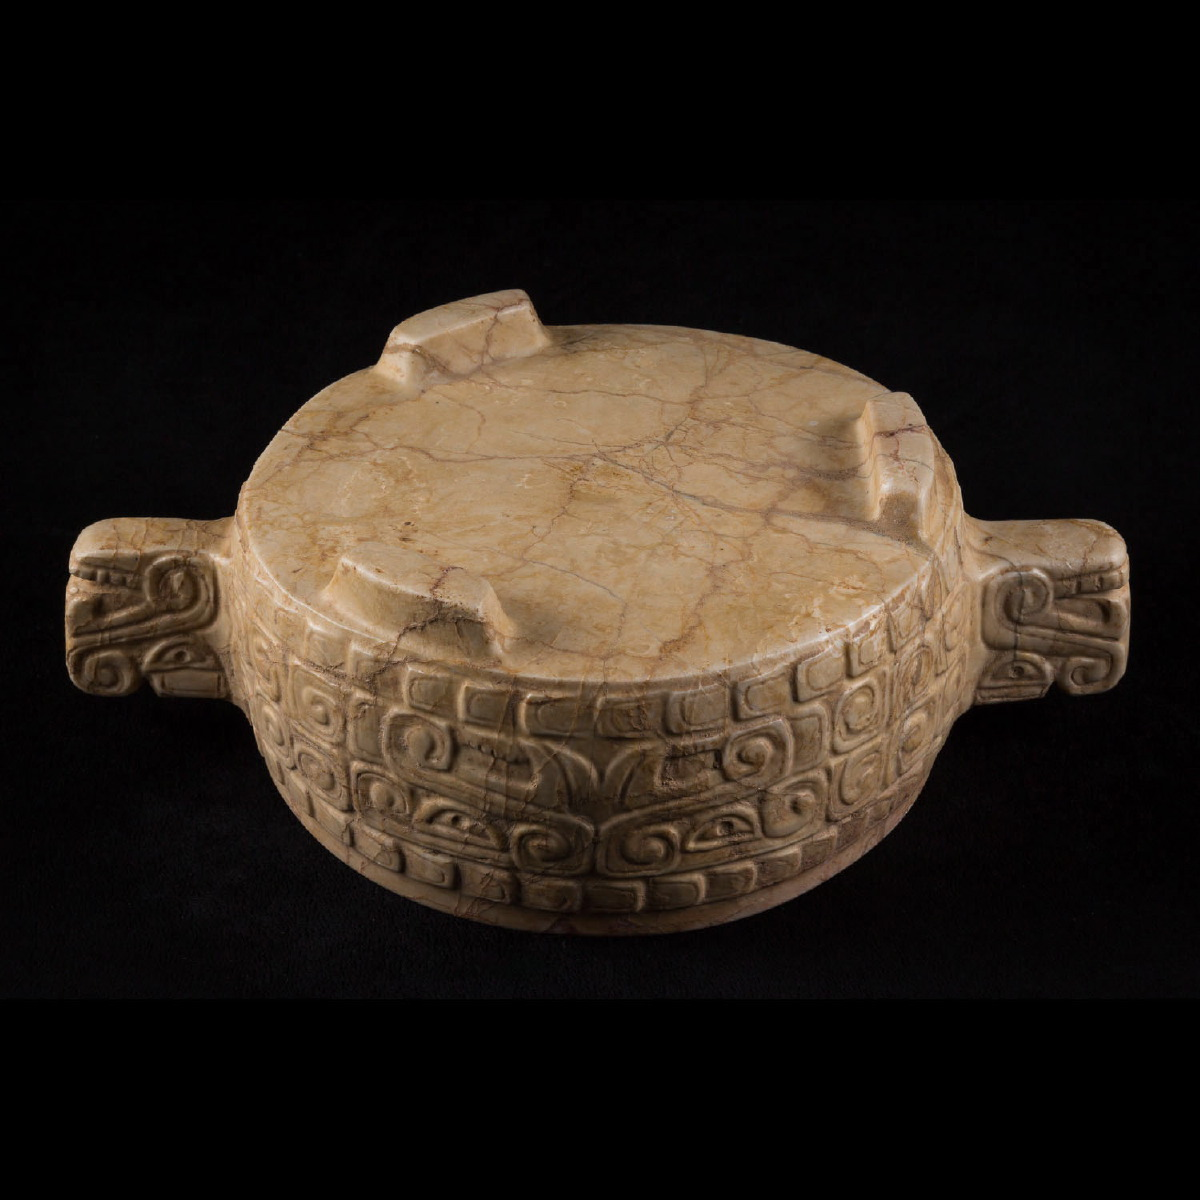 Photo of RARE MAYAN VESSEL ULÙA VALLEY FROM HONDURAS